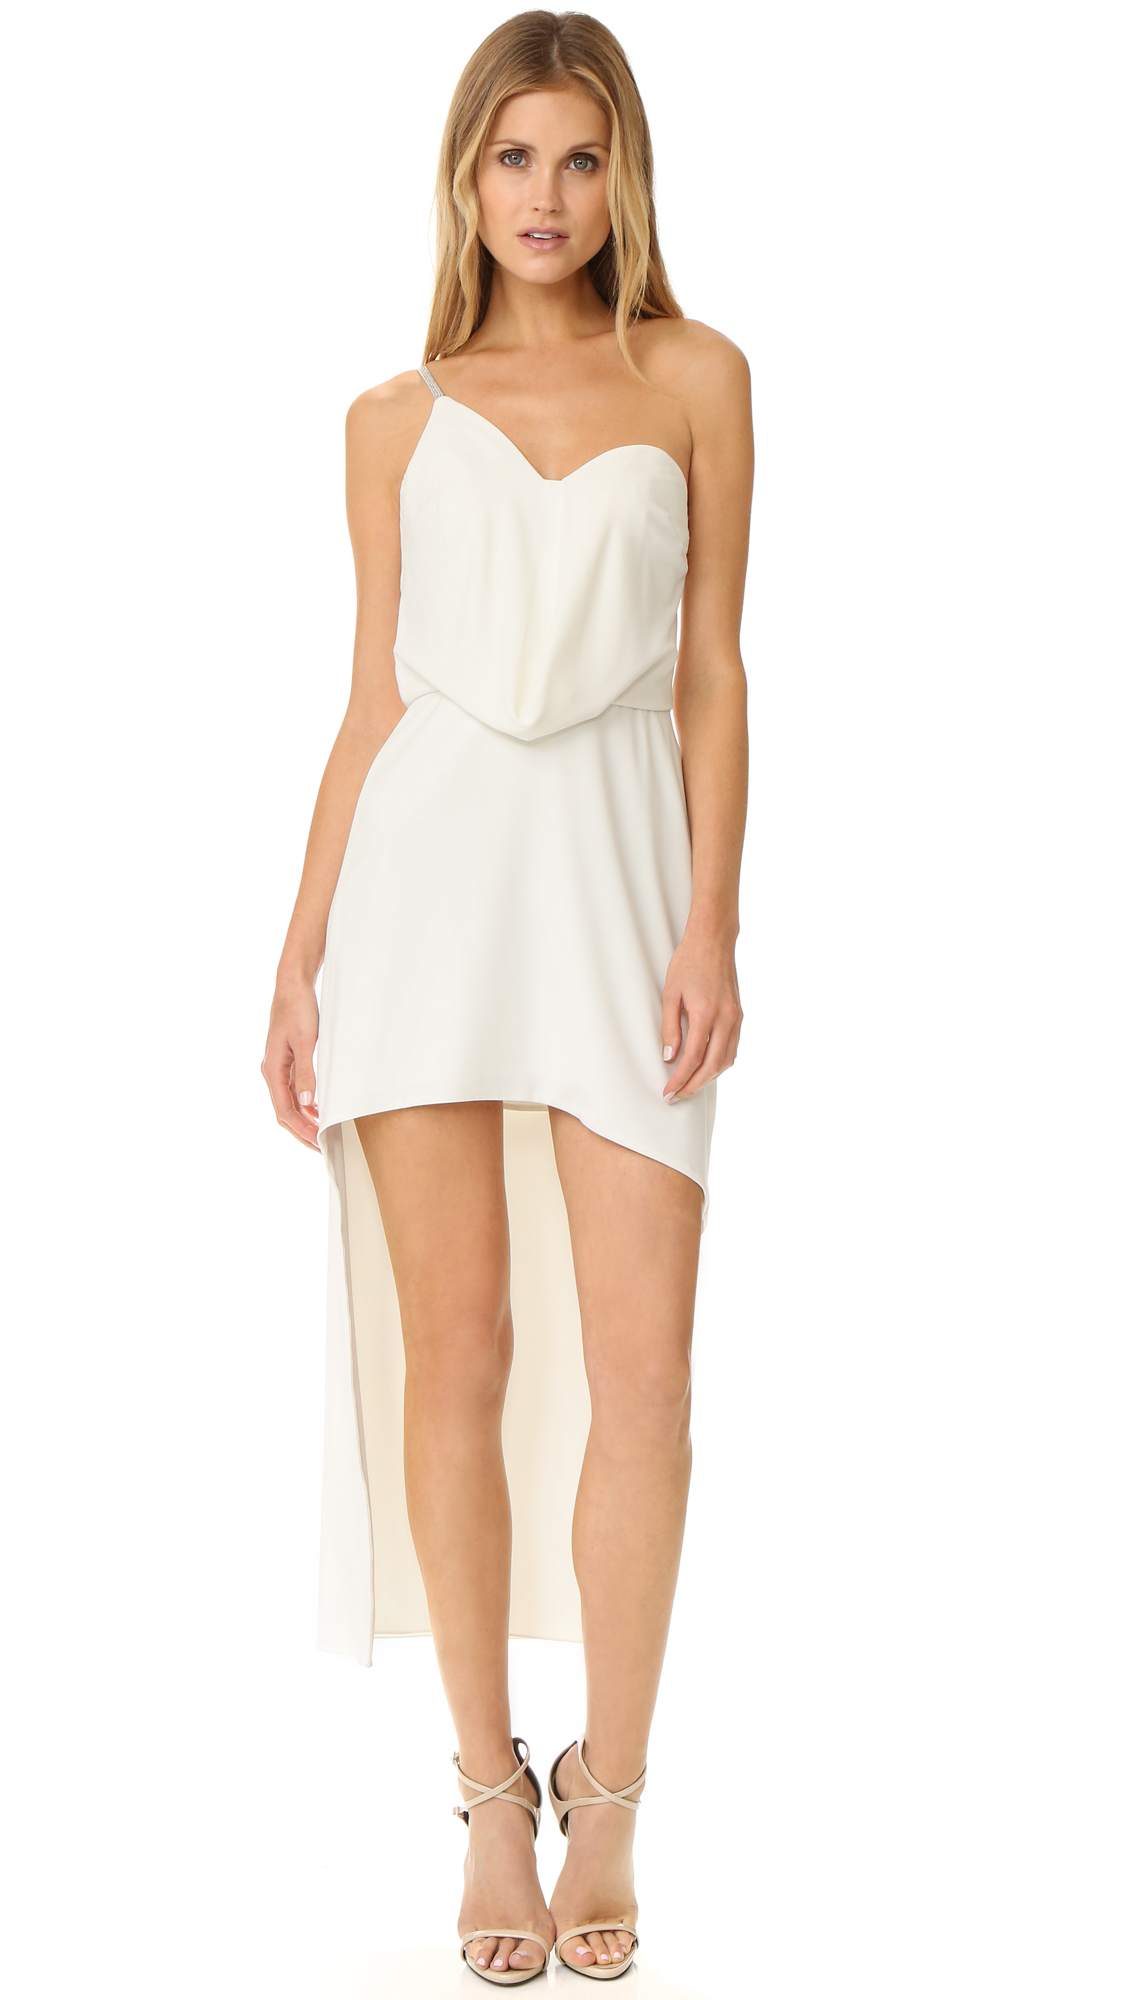 Halston heritage dresses and clothing cj online stores for Halston heritage shirt dress